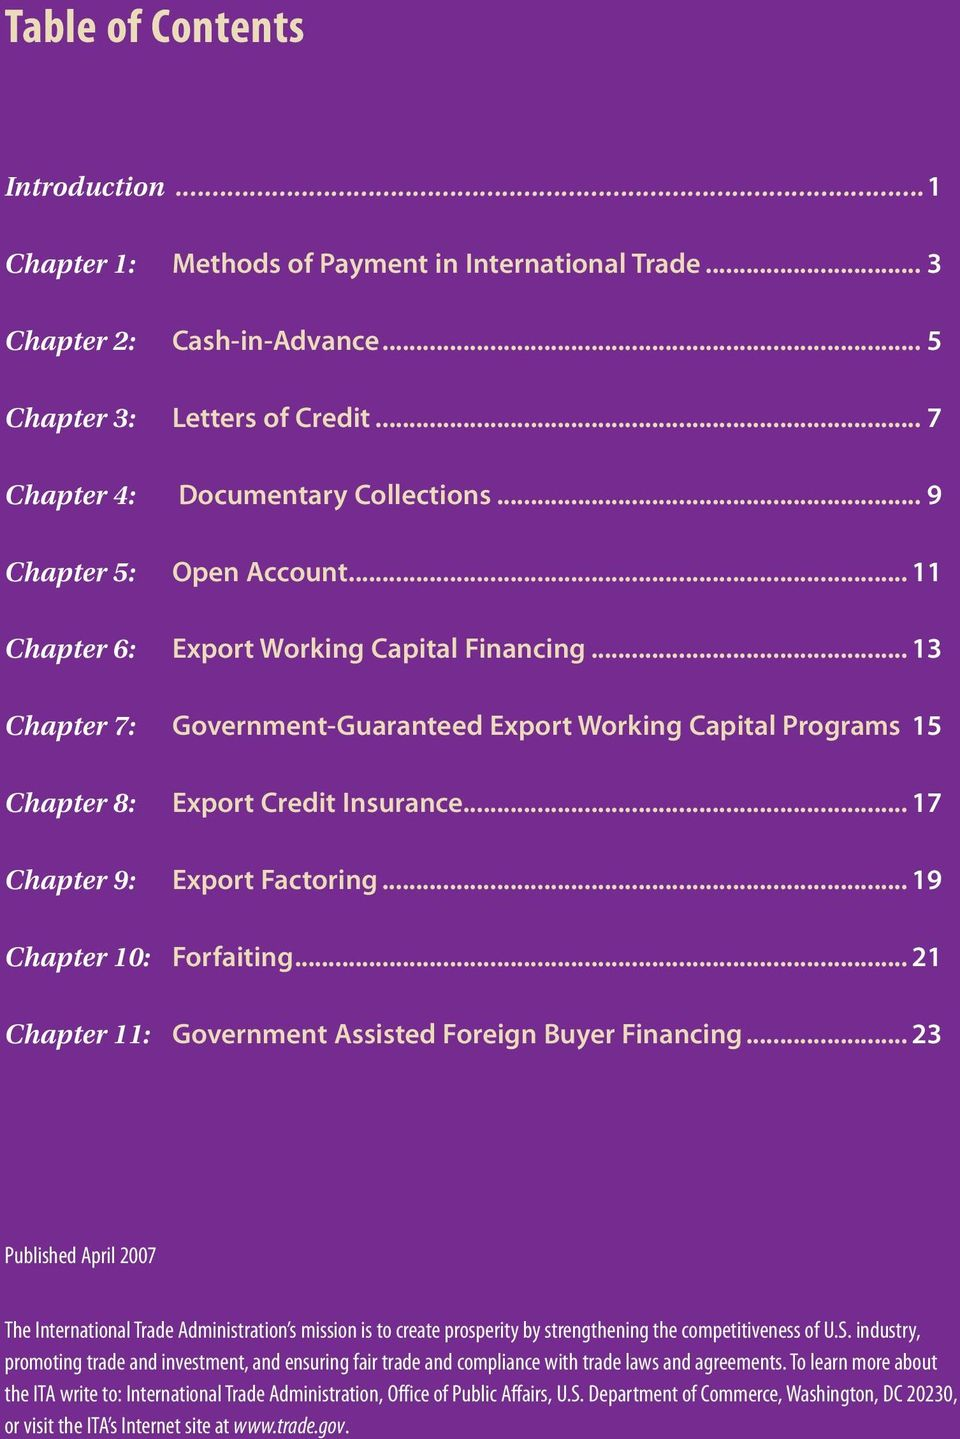 .. 17 Chapter 9: Export Factoring... 19 Chapter 10: Forfaiting... 21 Chapter 11: Government Assisted Foreign Buyer Financing.